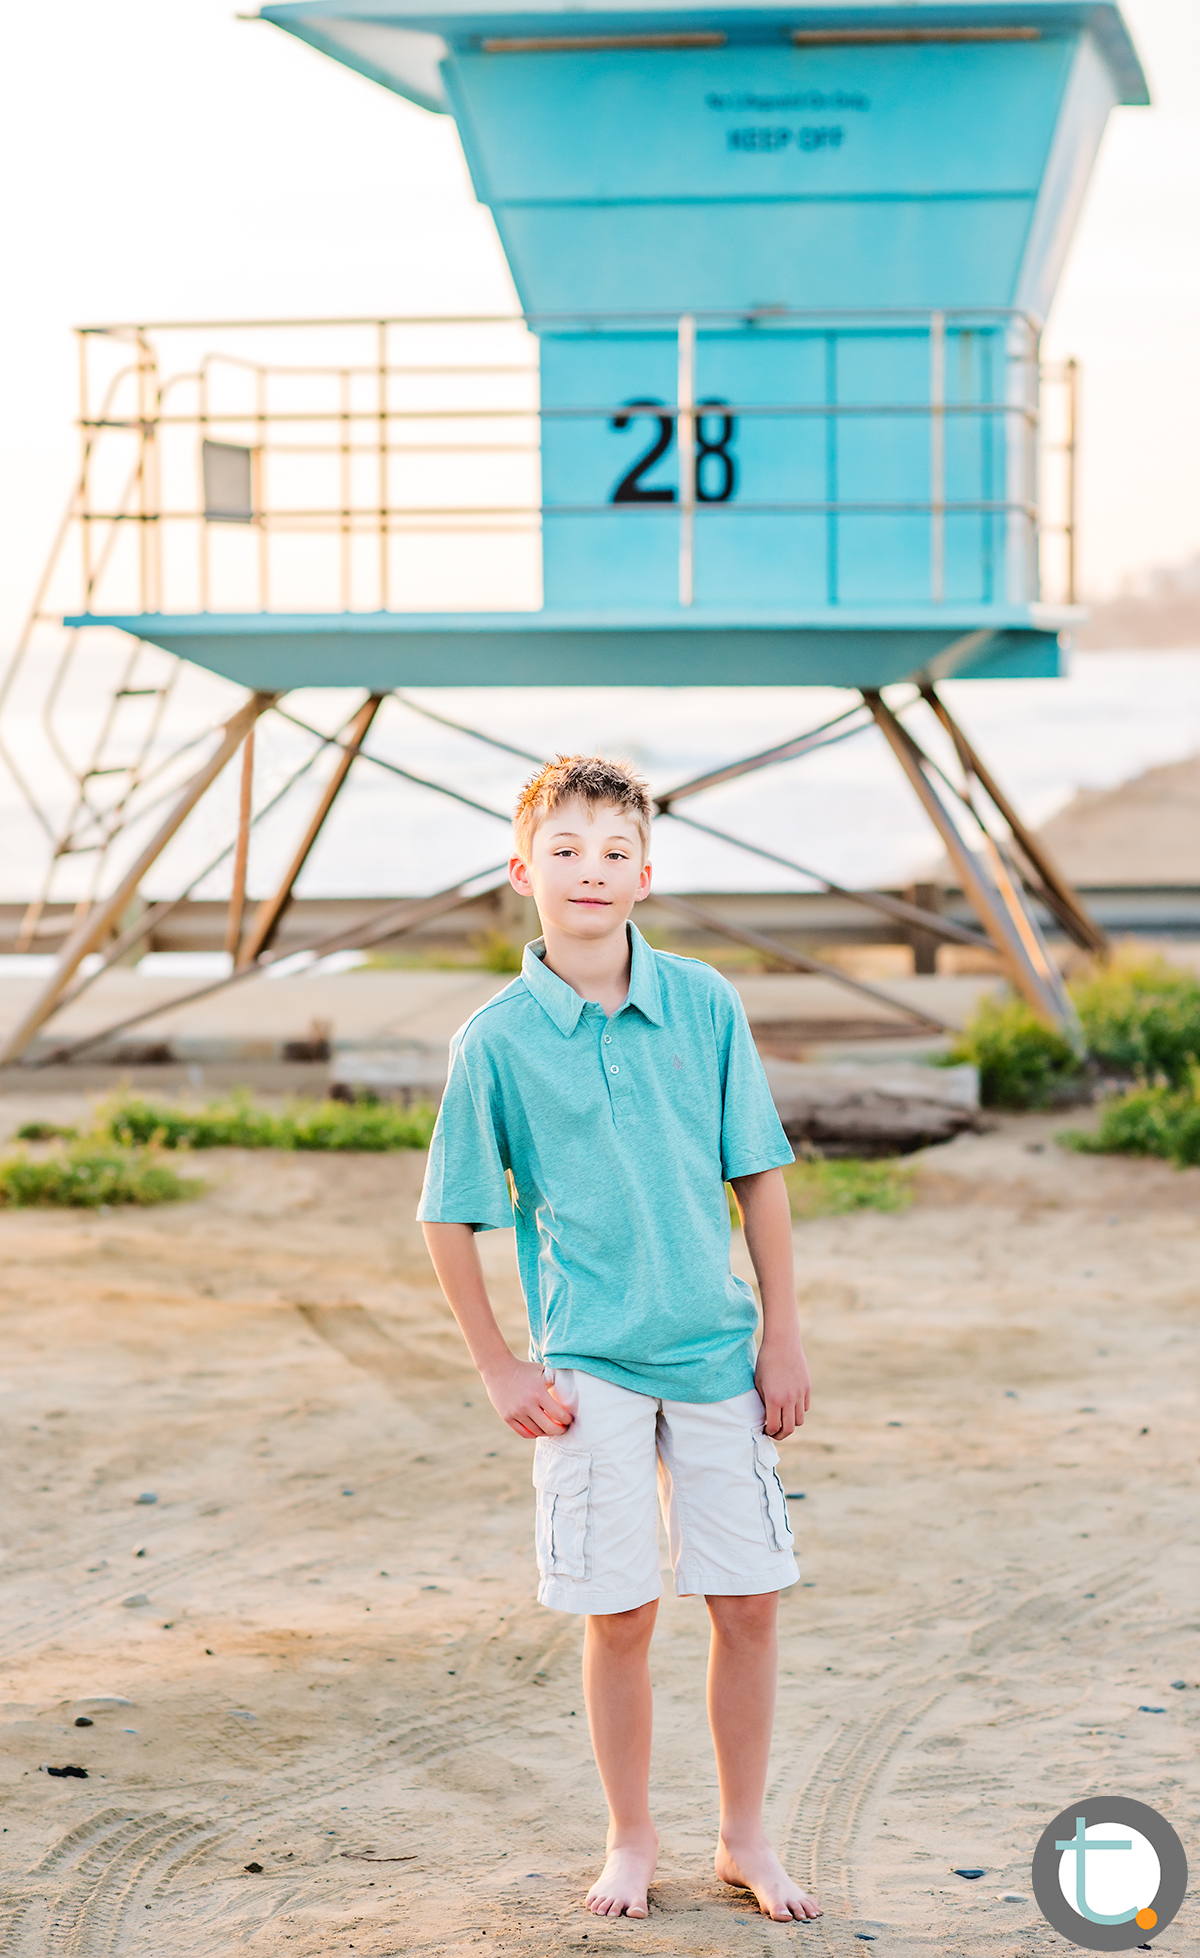 myson_campbell_sandiego_california_beach_lifeguardstand_tracyallynphotography